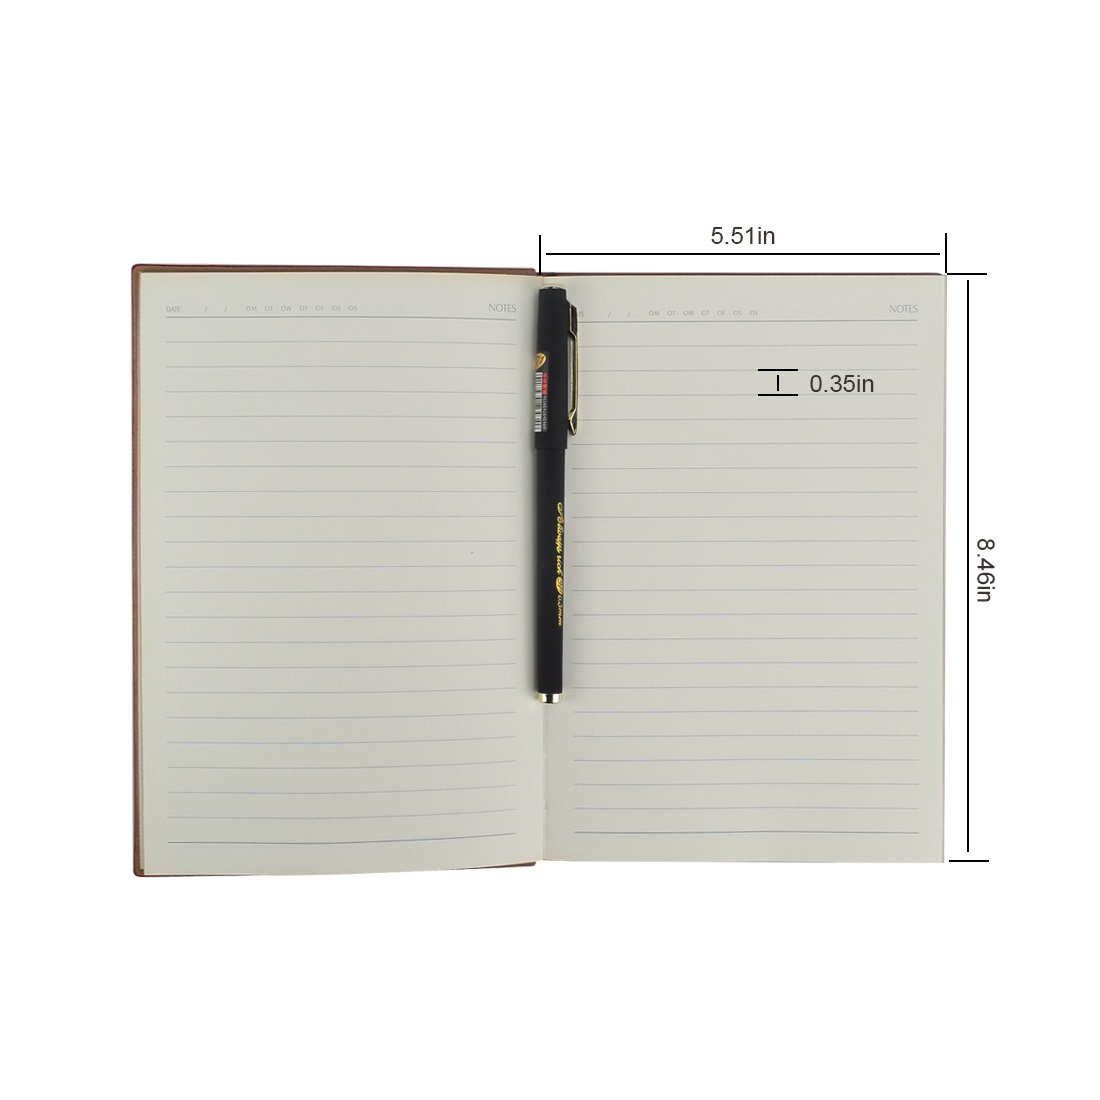 eBerry® Leather Notebook/Record Book/Lined Memo,Life&Success Planner,Classic Dark Coffee First Page,Pen Holder,Ribbon Bookmark,240 Lined Pages,6x8 Inches,0.5mm Gel Pen Included,Black(58-25) by izBuy (Image #3)